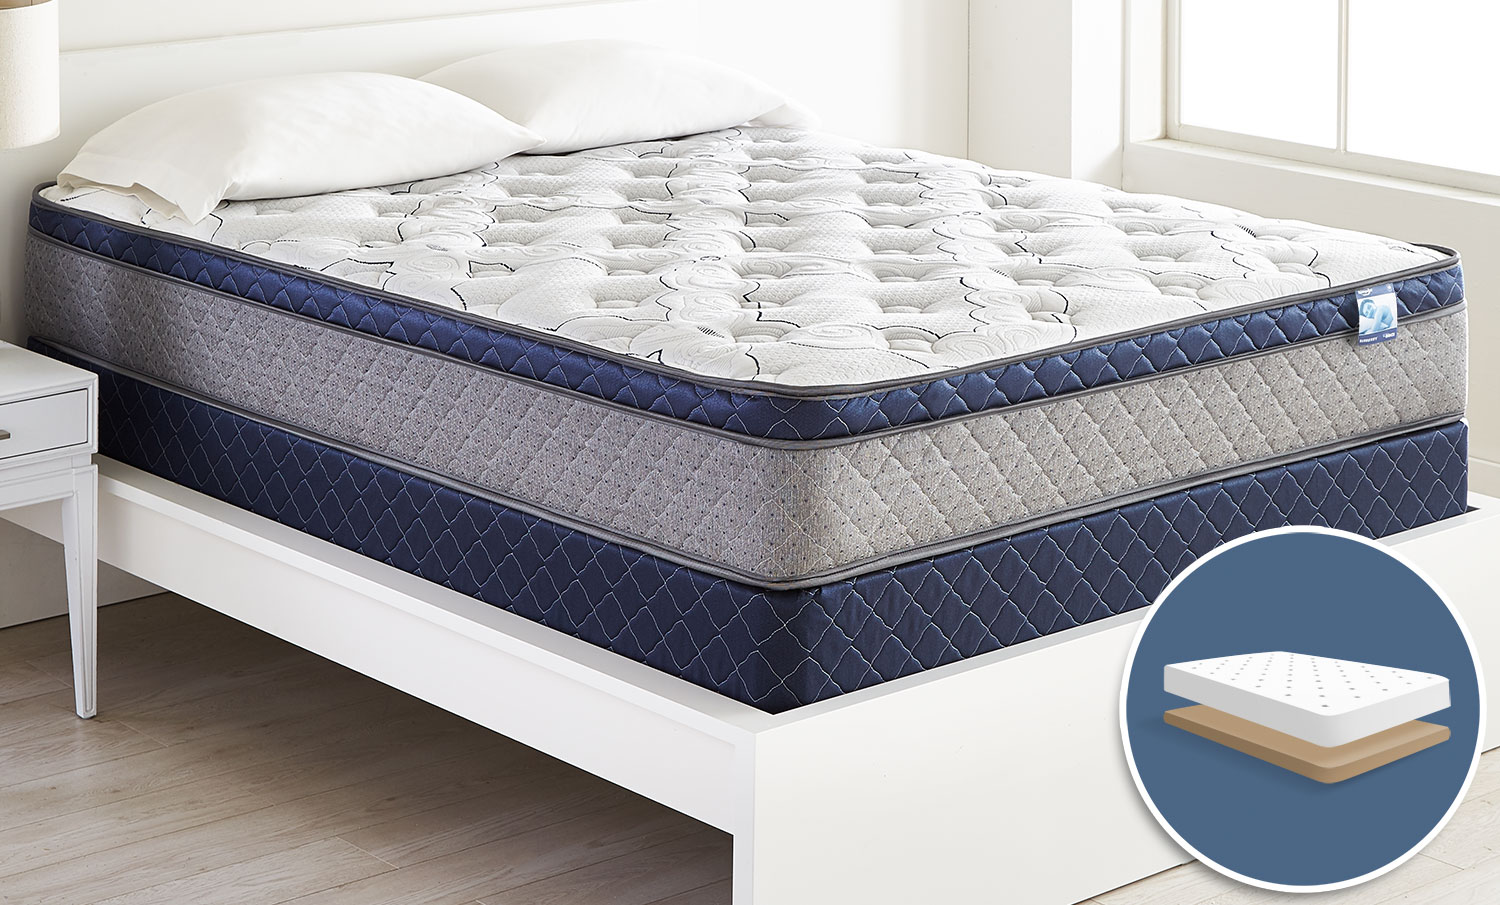 Mattresses and Bedding - Springwall Burberry Euro-Top Firm Twin Mattress and Low-Profile Boxspring Set